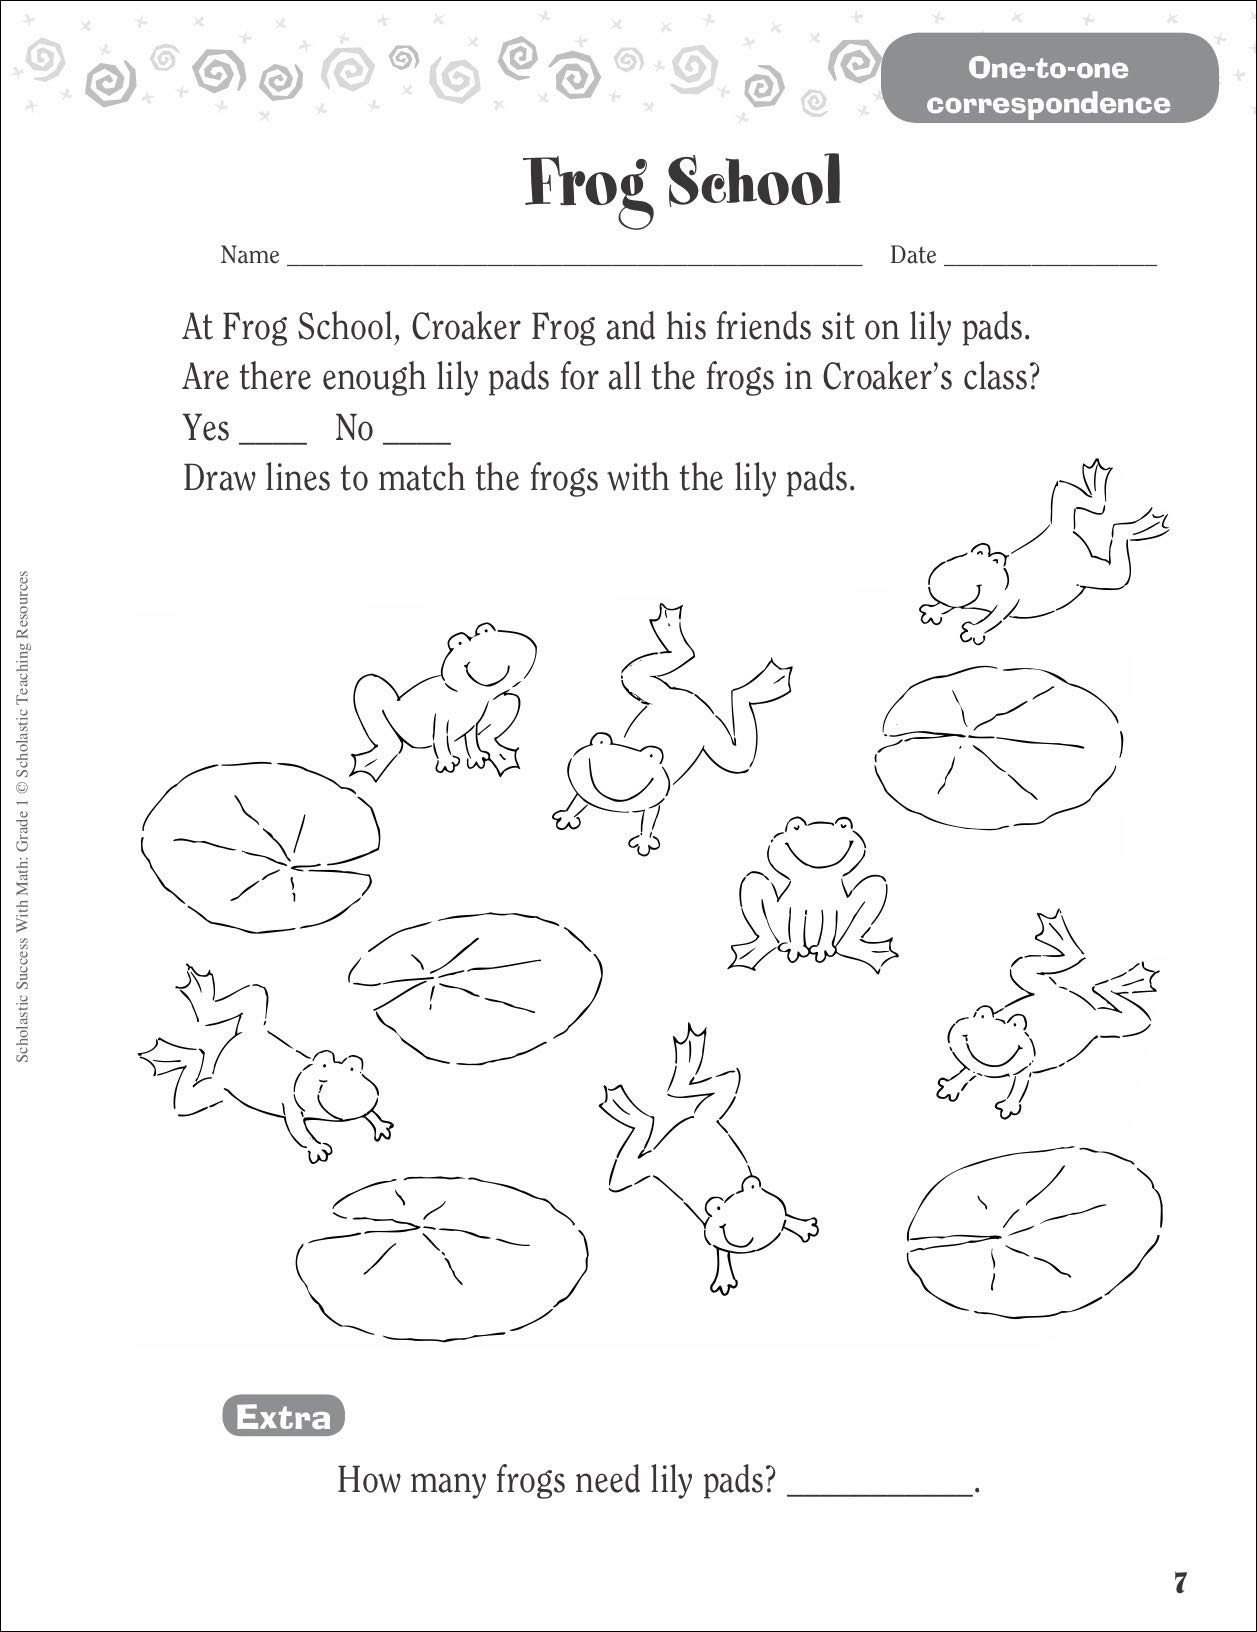 Timeline Worksheets for 1st Grade Worksheet Ideas 1st Grade English Prehension Worksheets